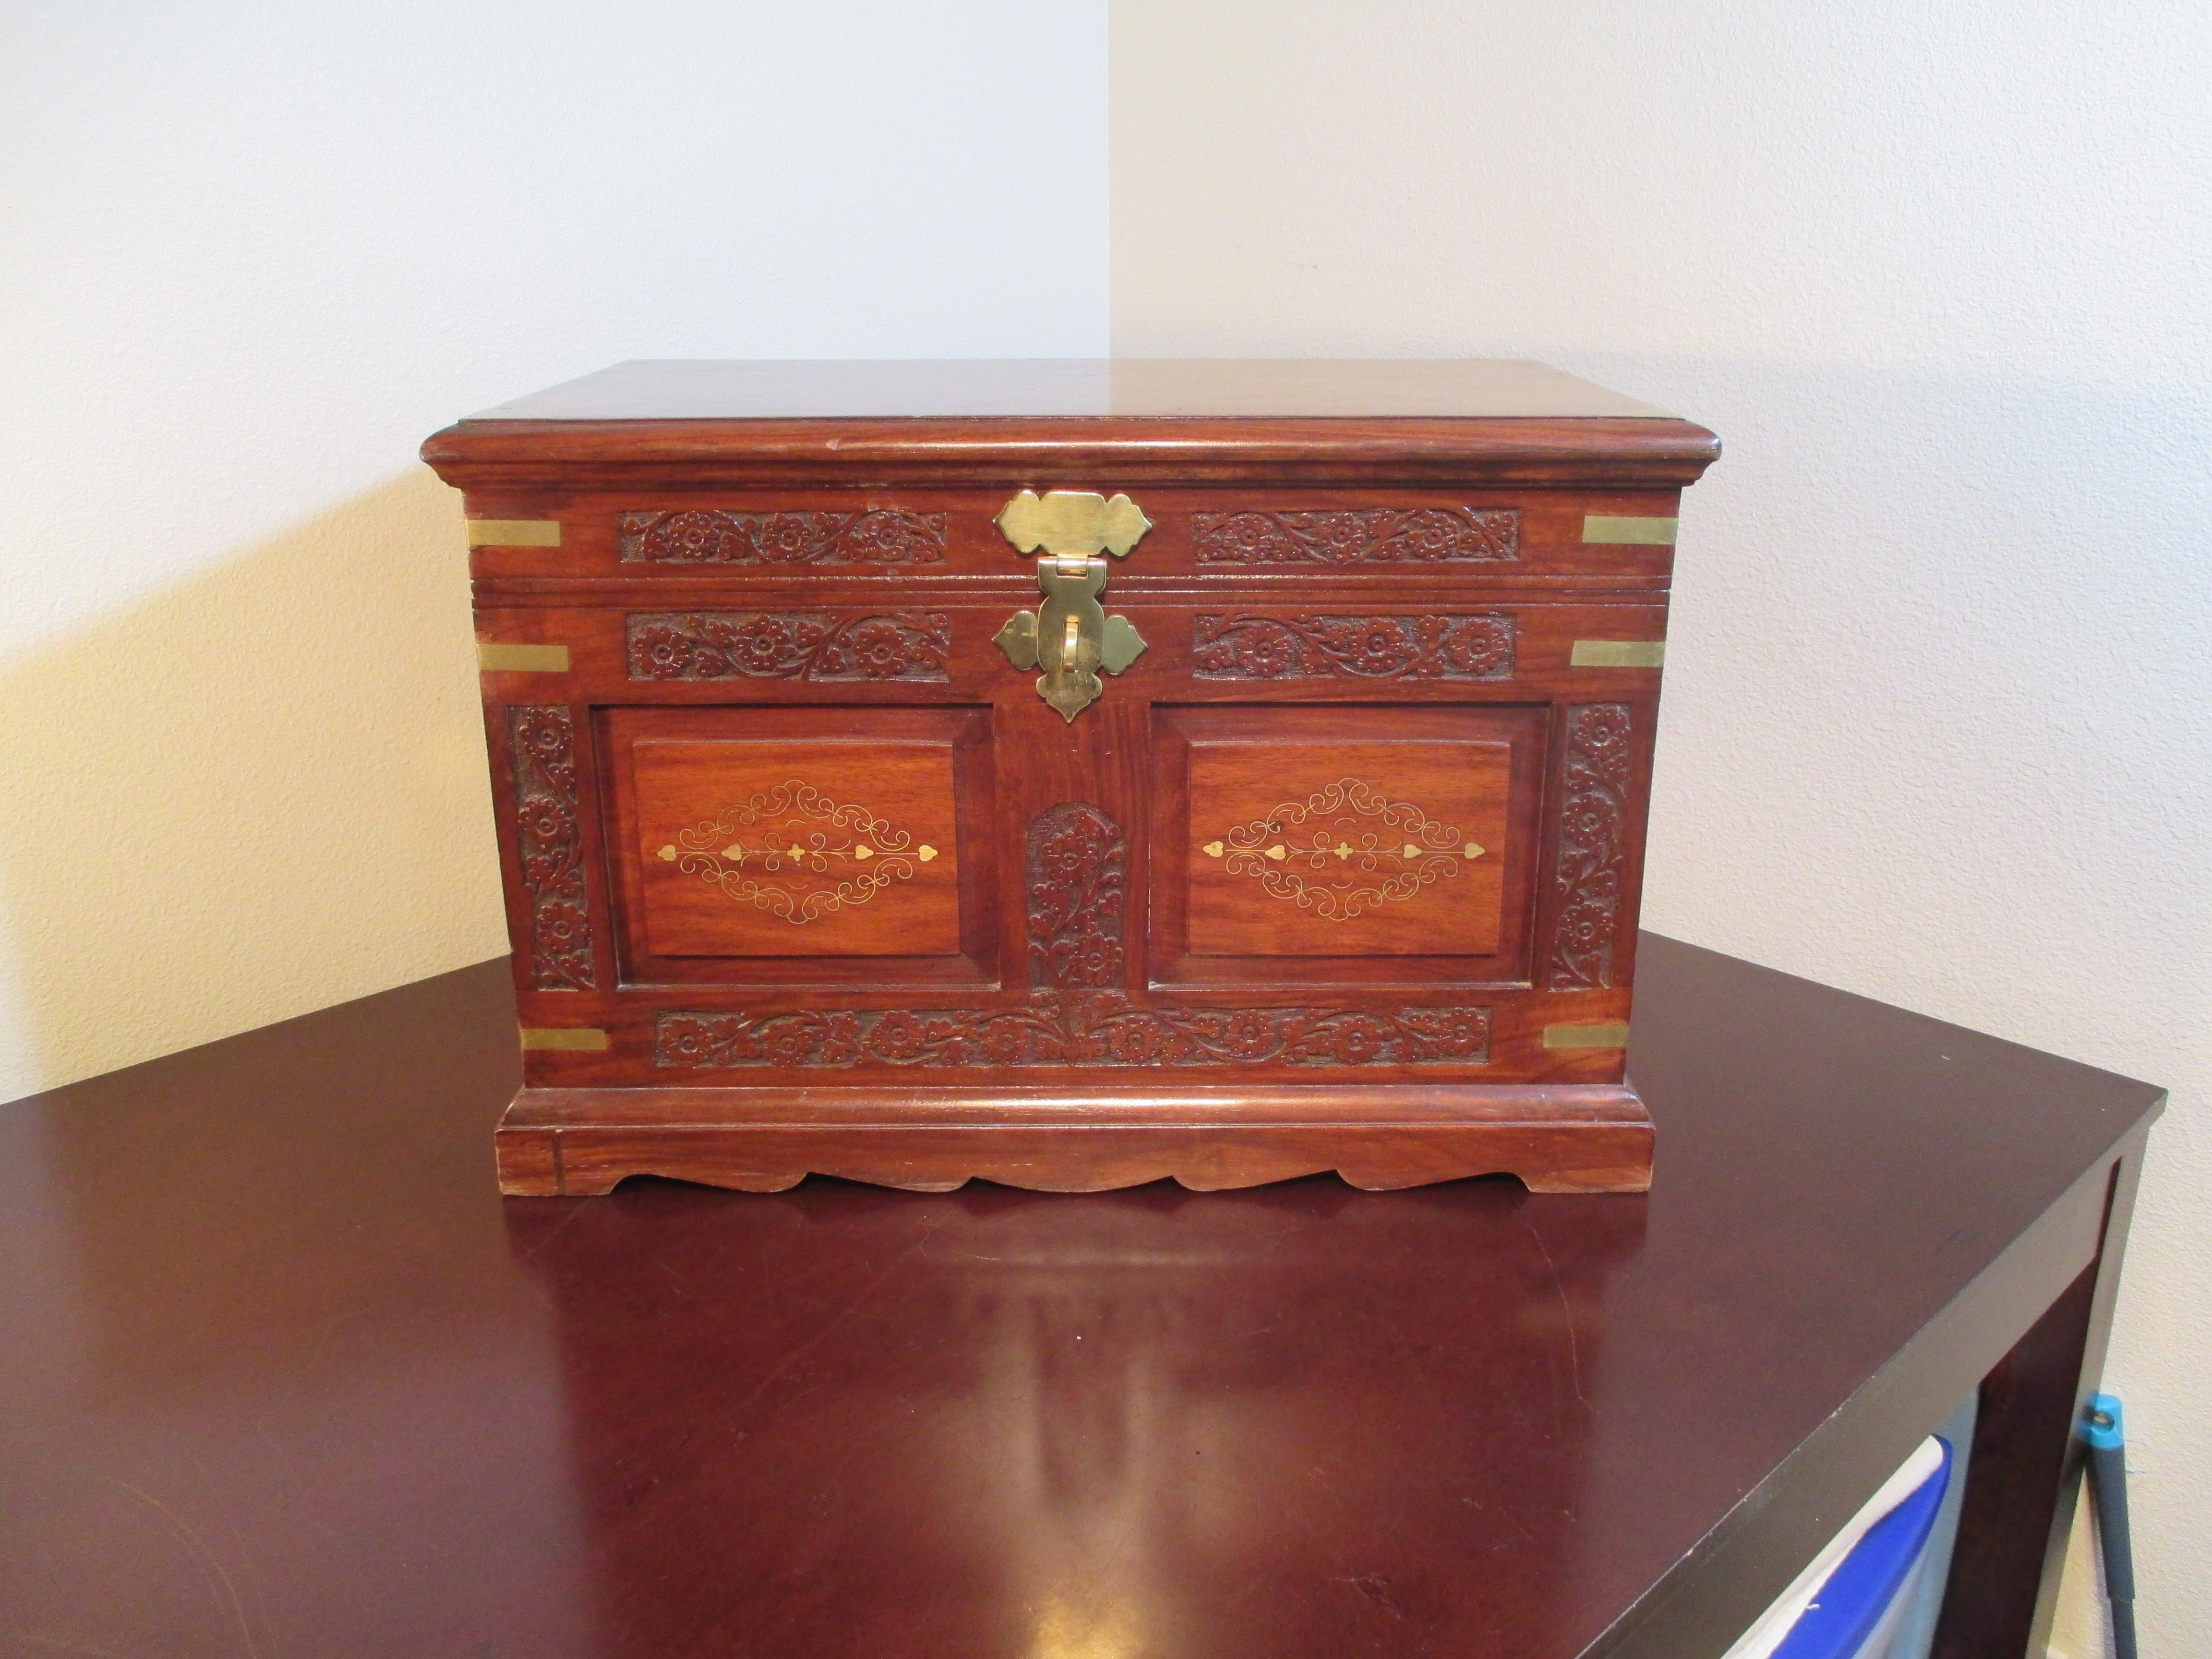 """Always wanted a safe for those memory sakes but never found one that fits you, and your personality. Well, we might just have the one for you! This handcrafted rosewood chest has traveled from the far Middle East just to find itself nice and snug in your lovely home! 16"""" H x 24 1/4"""" W x 14 3/8"""" L  Shipping available upon request"""